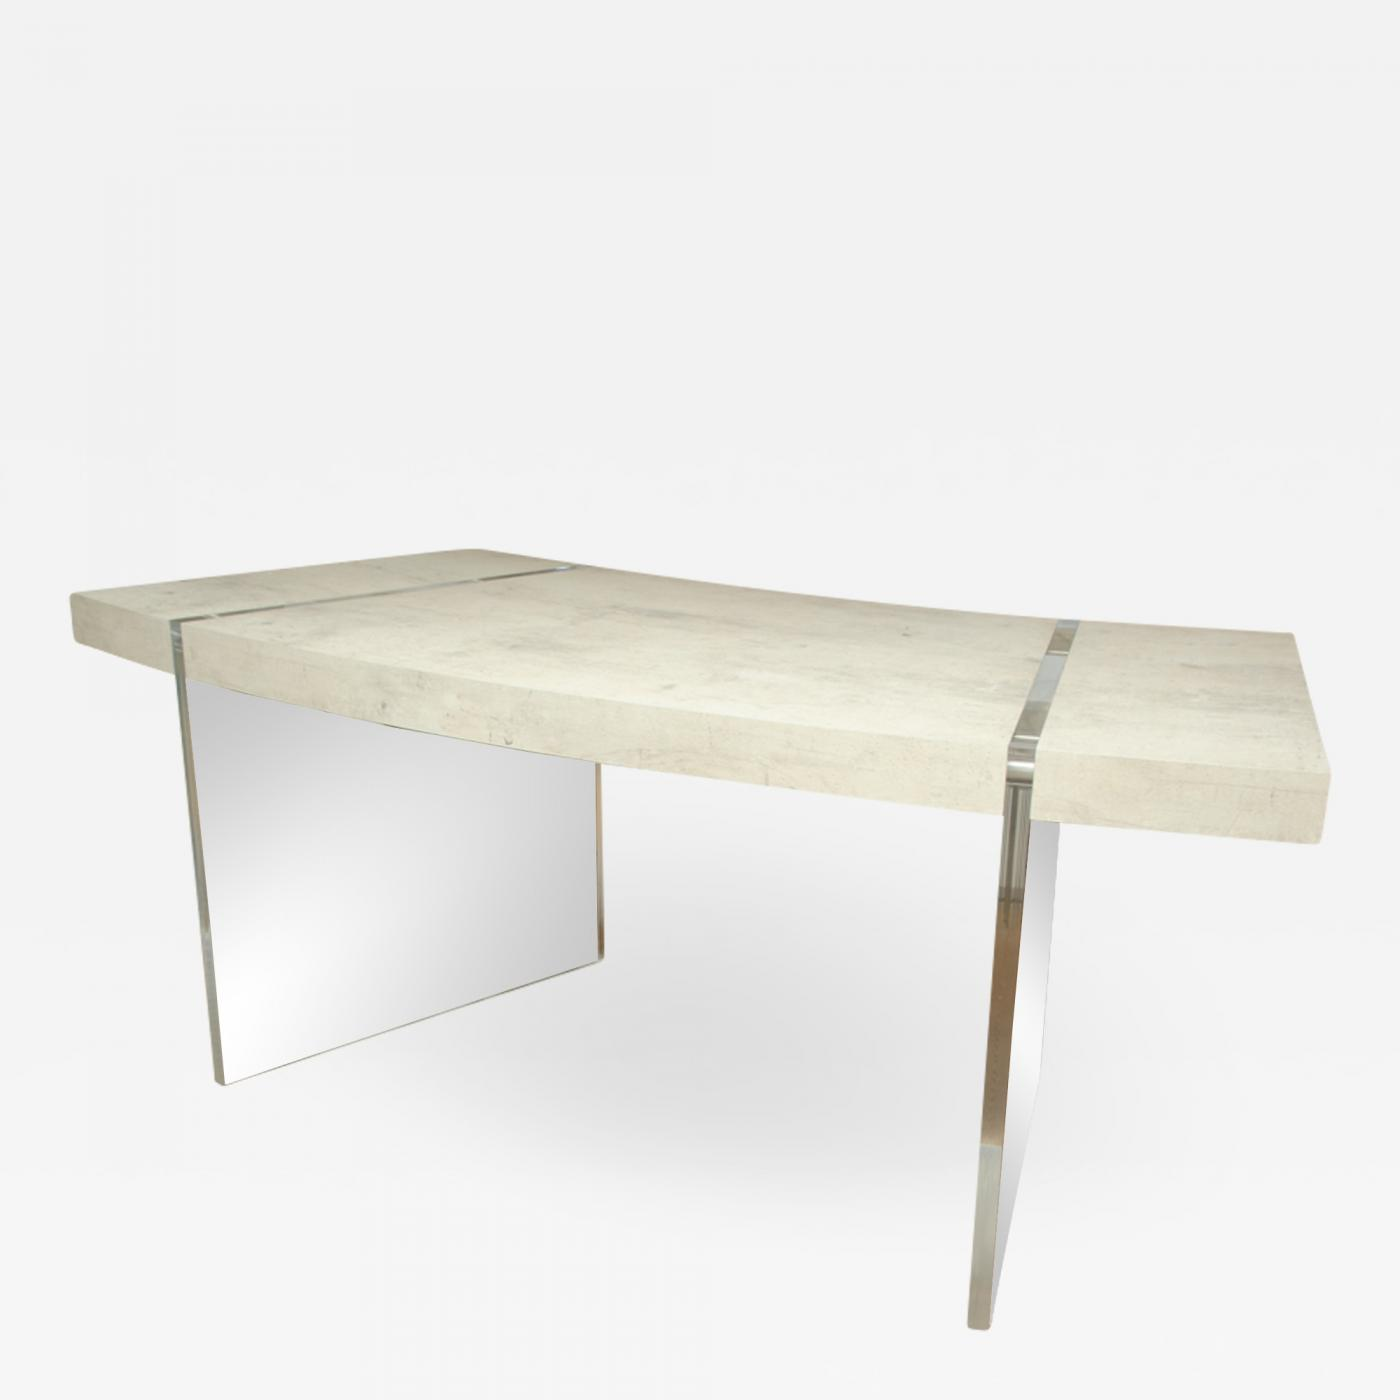 Attractive 1 Drawer Desk With Lucite Legs